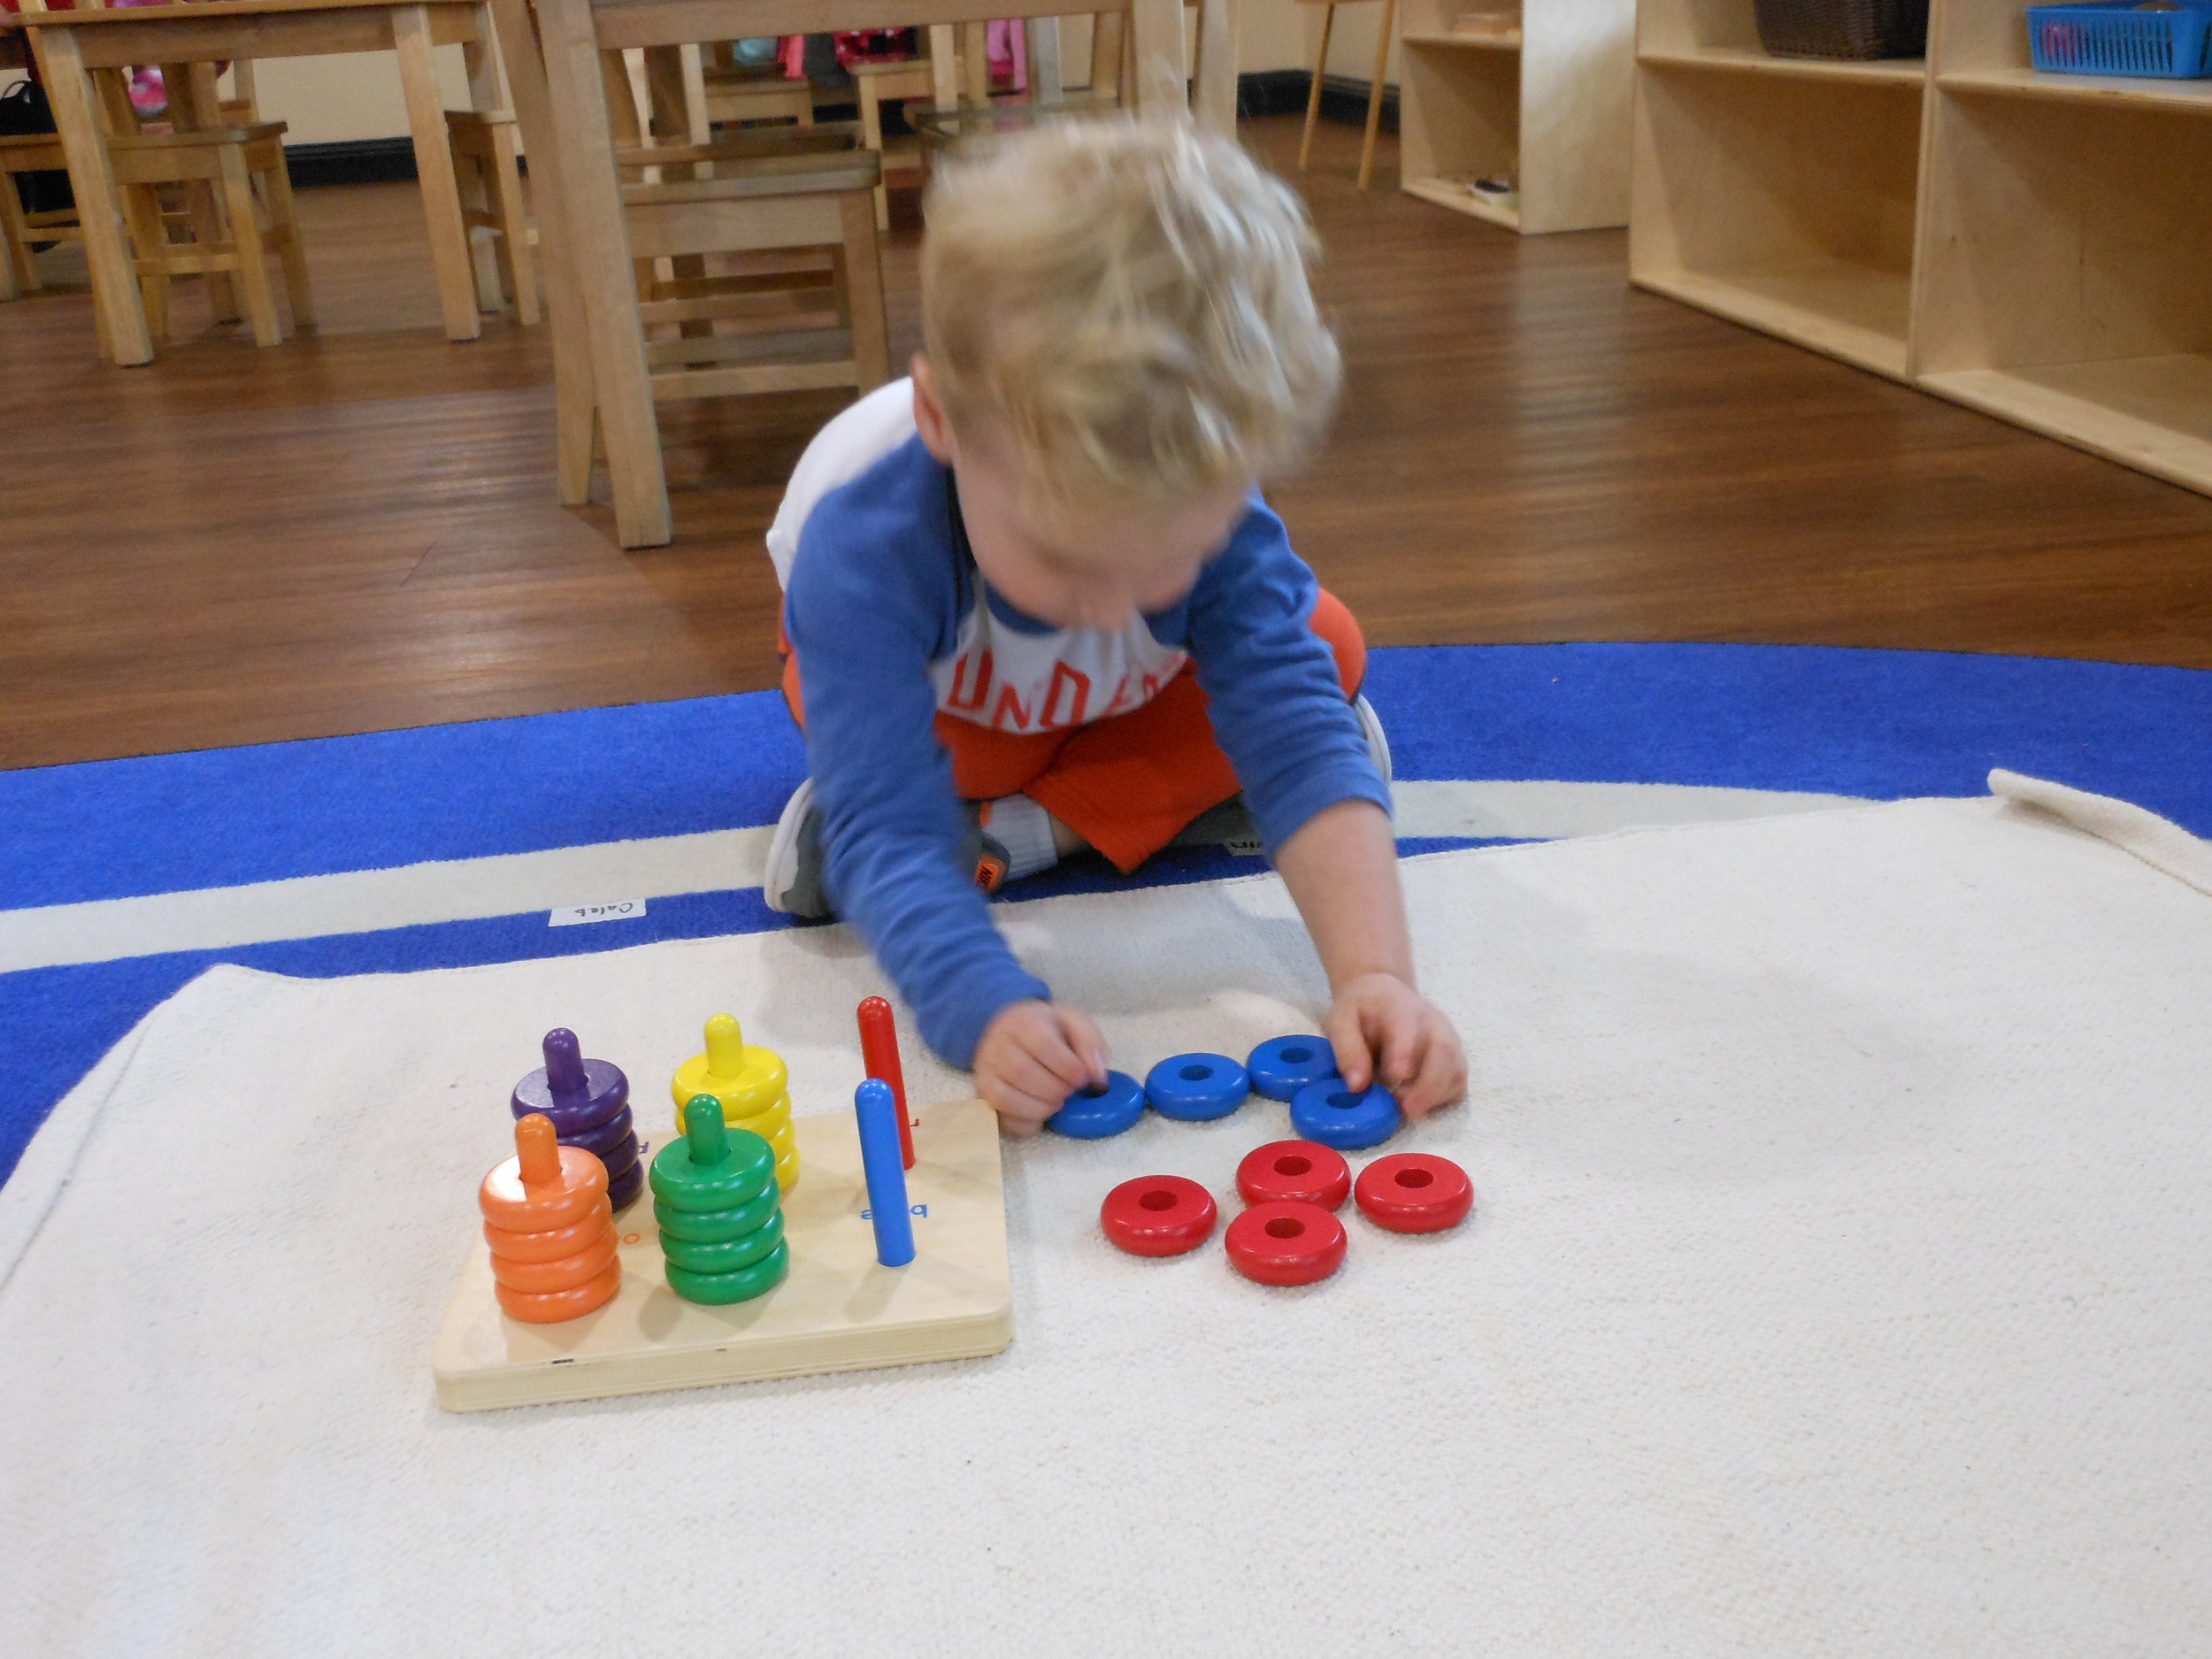 Day Care center in Las Colinas